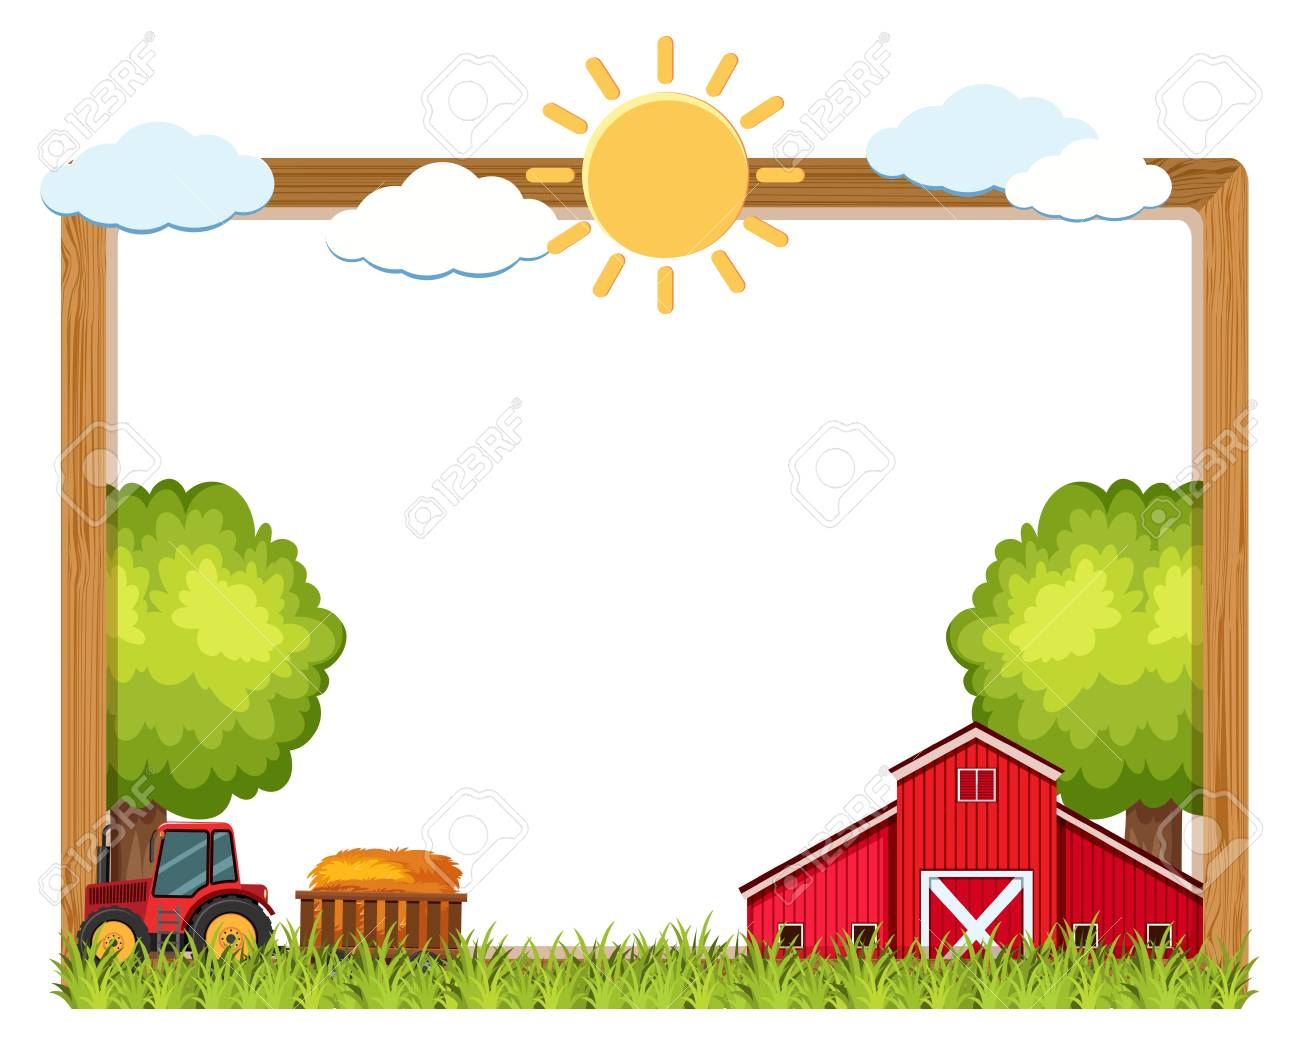 hight resolution of vector wooden frame with farm in background illustration